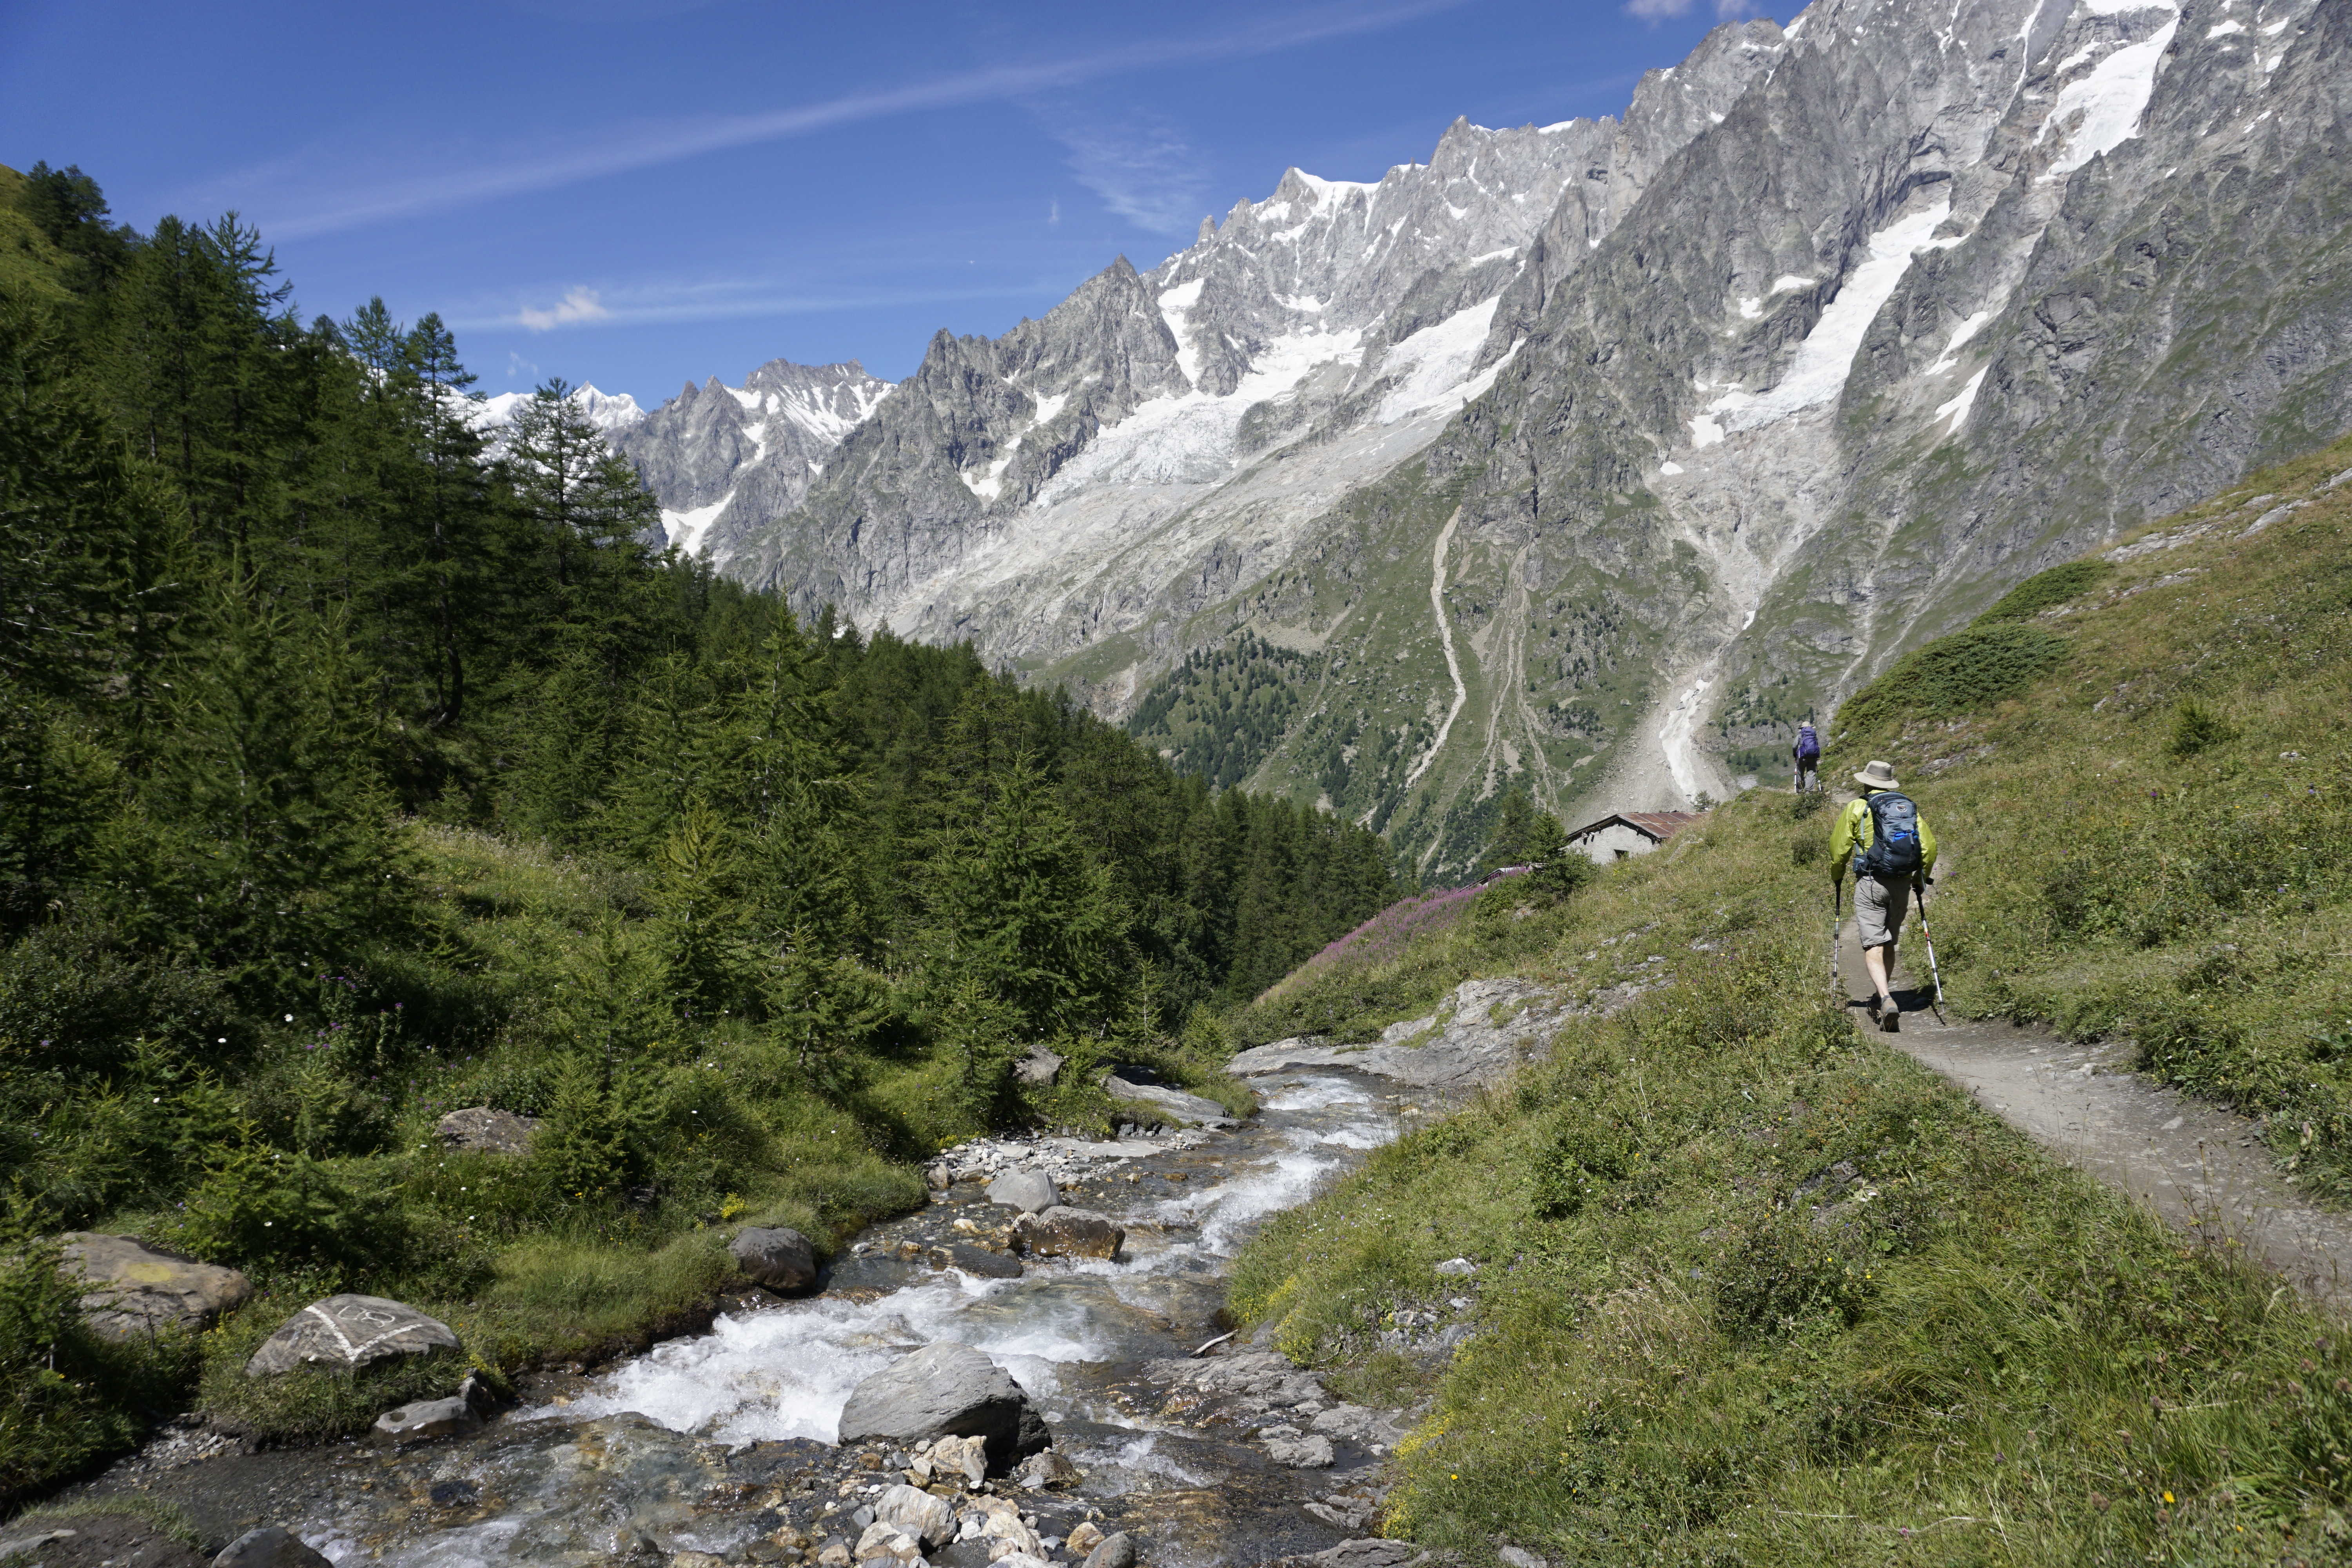 Hiking the Tour du Mont Blanc in a Week